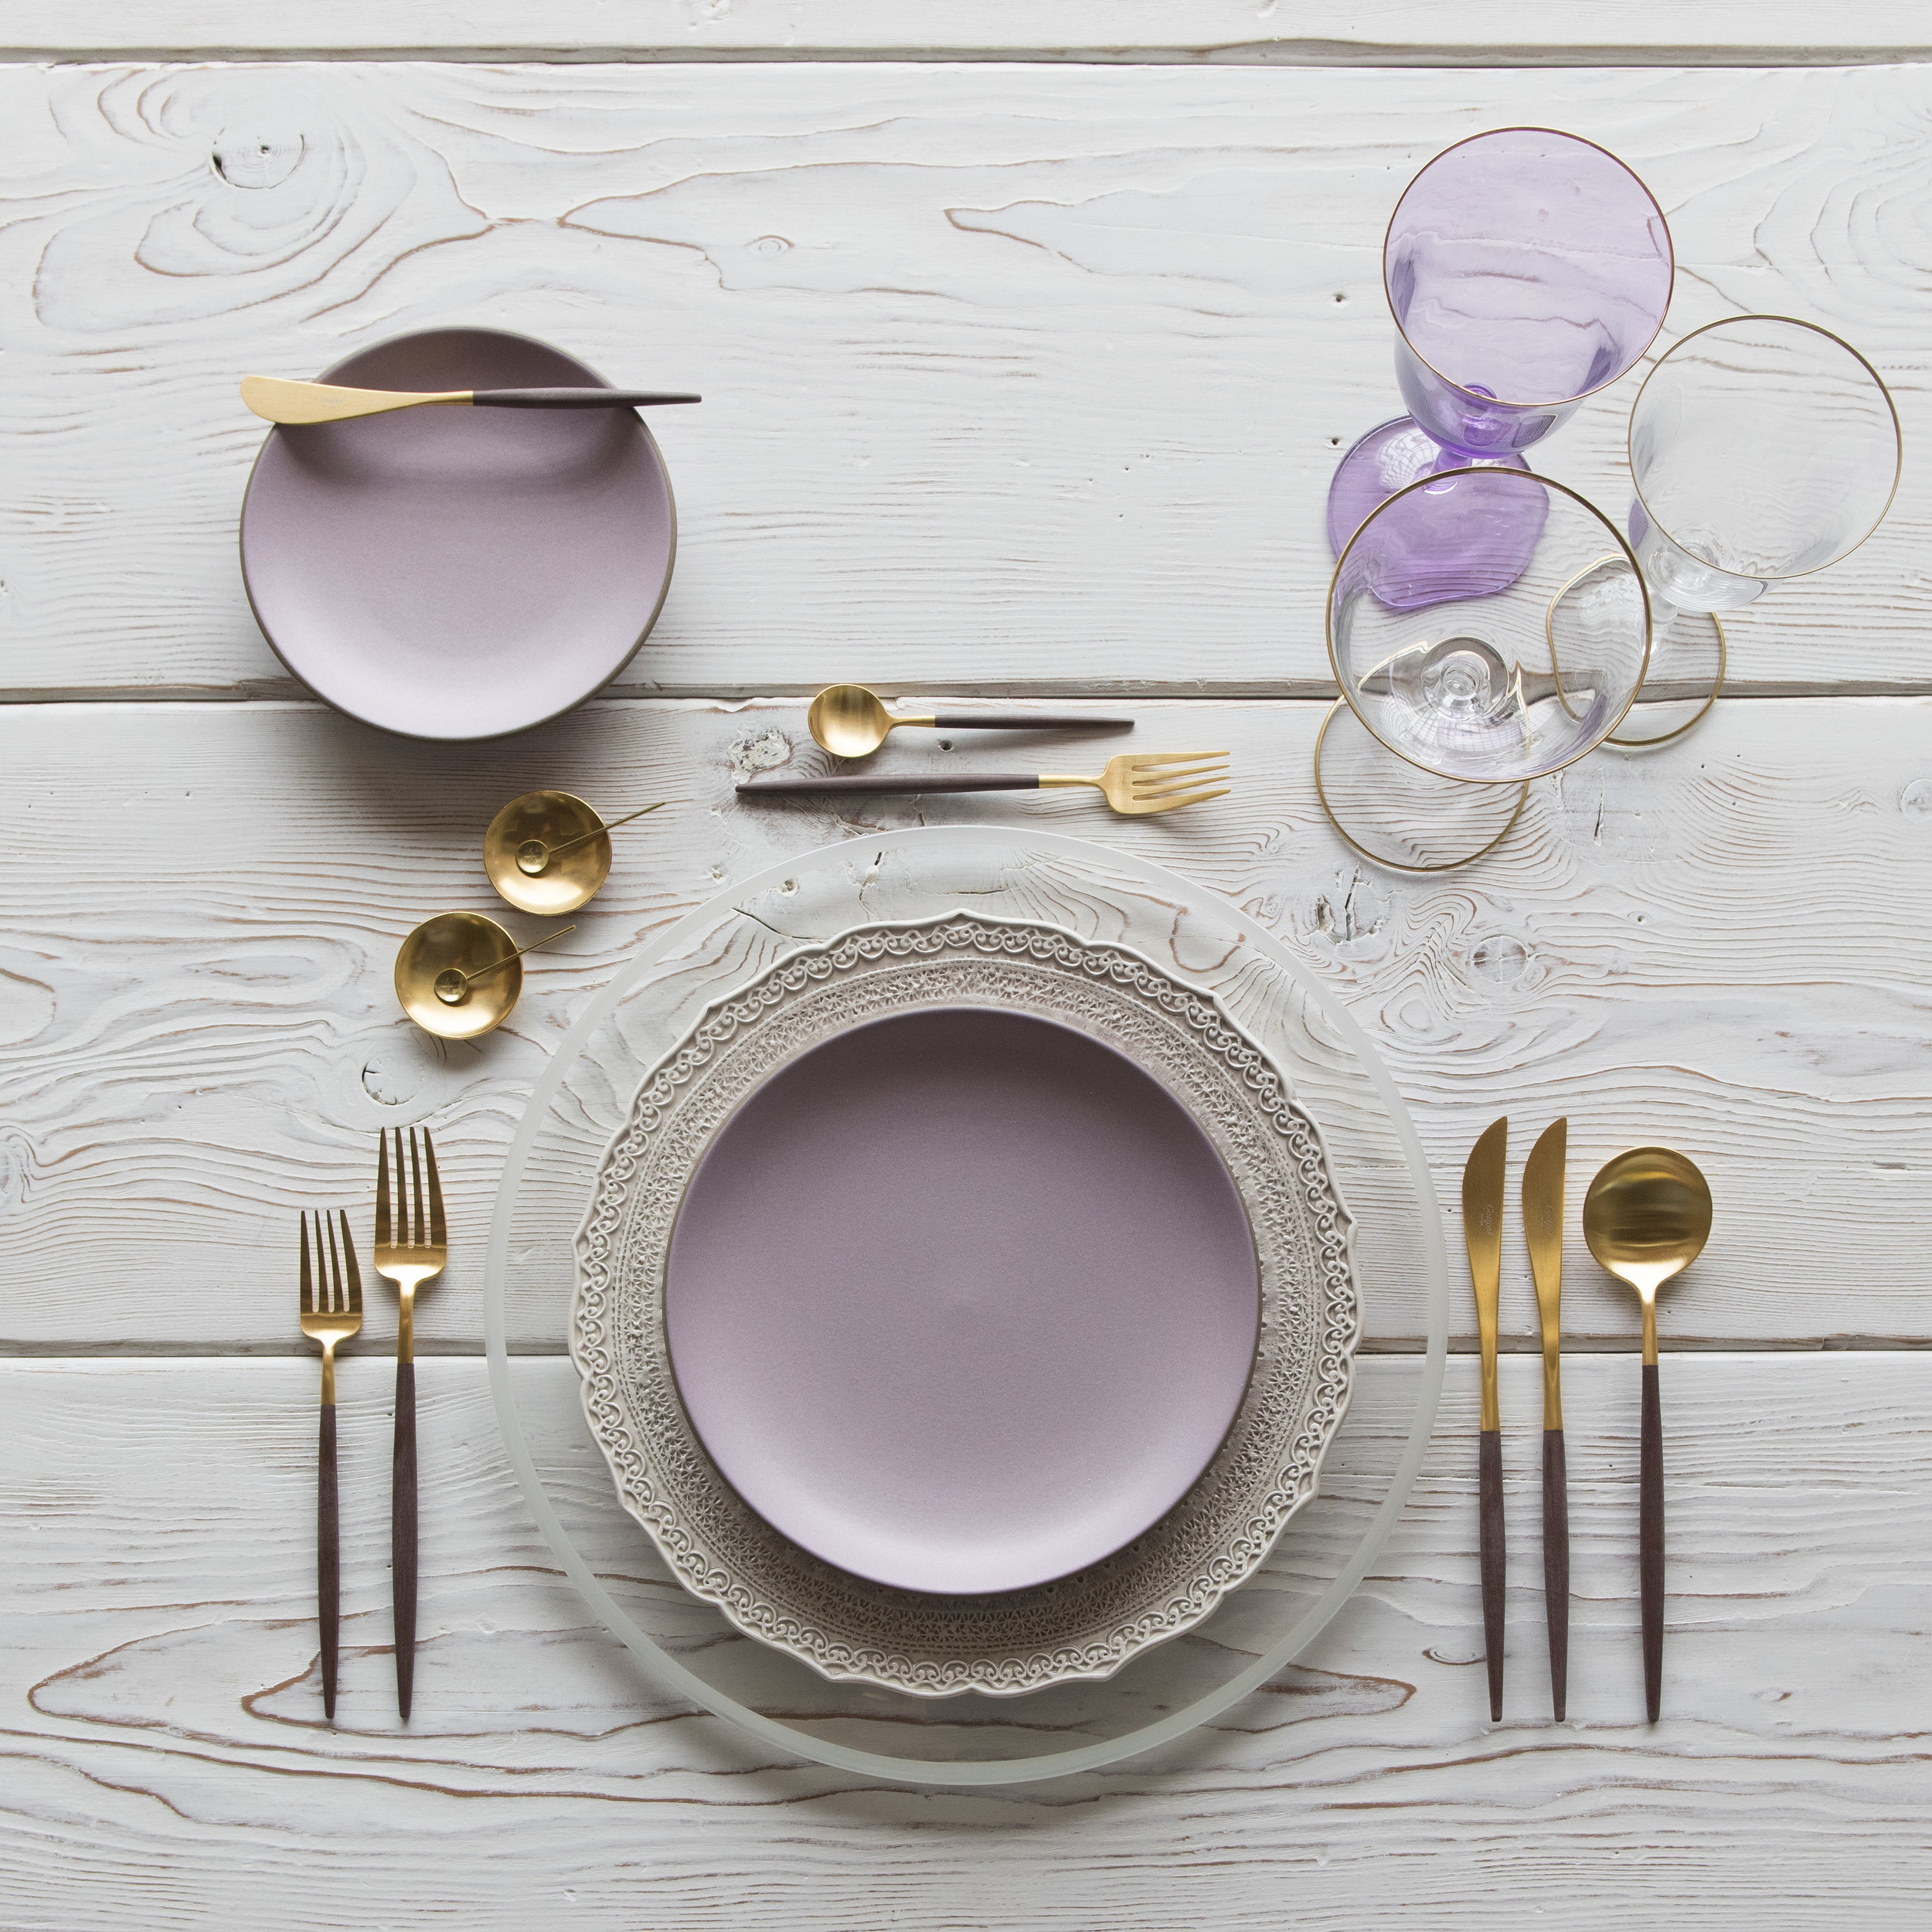 RENT: Halo Glass Chargers in Pearl + Lace Dinnerware in White + Custom Heath Ceramics in Wildflower + Goa Flatware in Brushed 24k Gold/Wood + Chloe 24k Gold Rimmed Stemware + Chloe 24k Gold Rimmed Goblet in Lilac + 14k Gold Salt Cellars + Tiny Gold Spoons   SHOP: Halo Glass Chargers in Pearl + Goa Flatware in Brushed 24k Gold/Wood + Chloe 24k Gold Rimmed Stemware + 14k Gold Salt Cellars + Tiny Gold Spoons